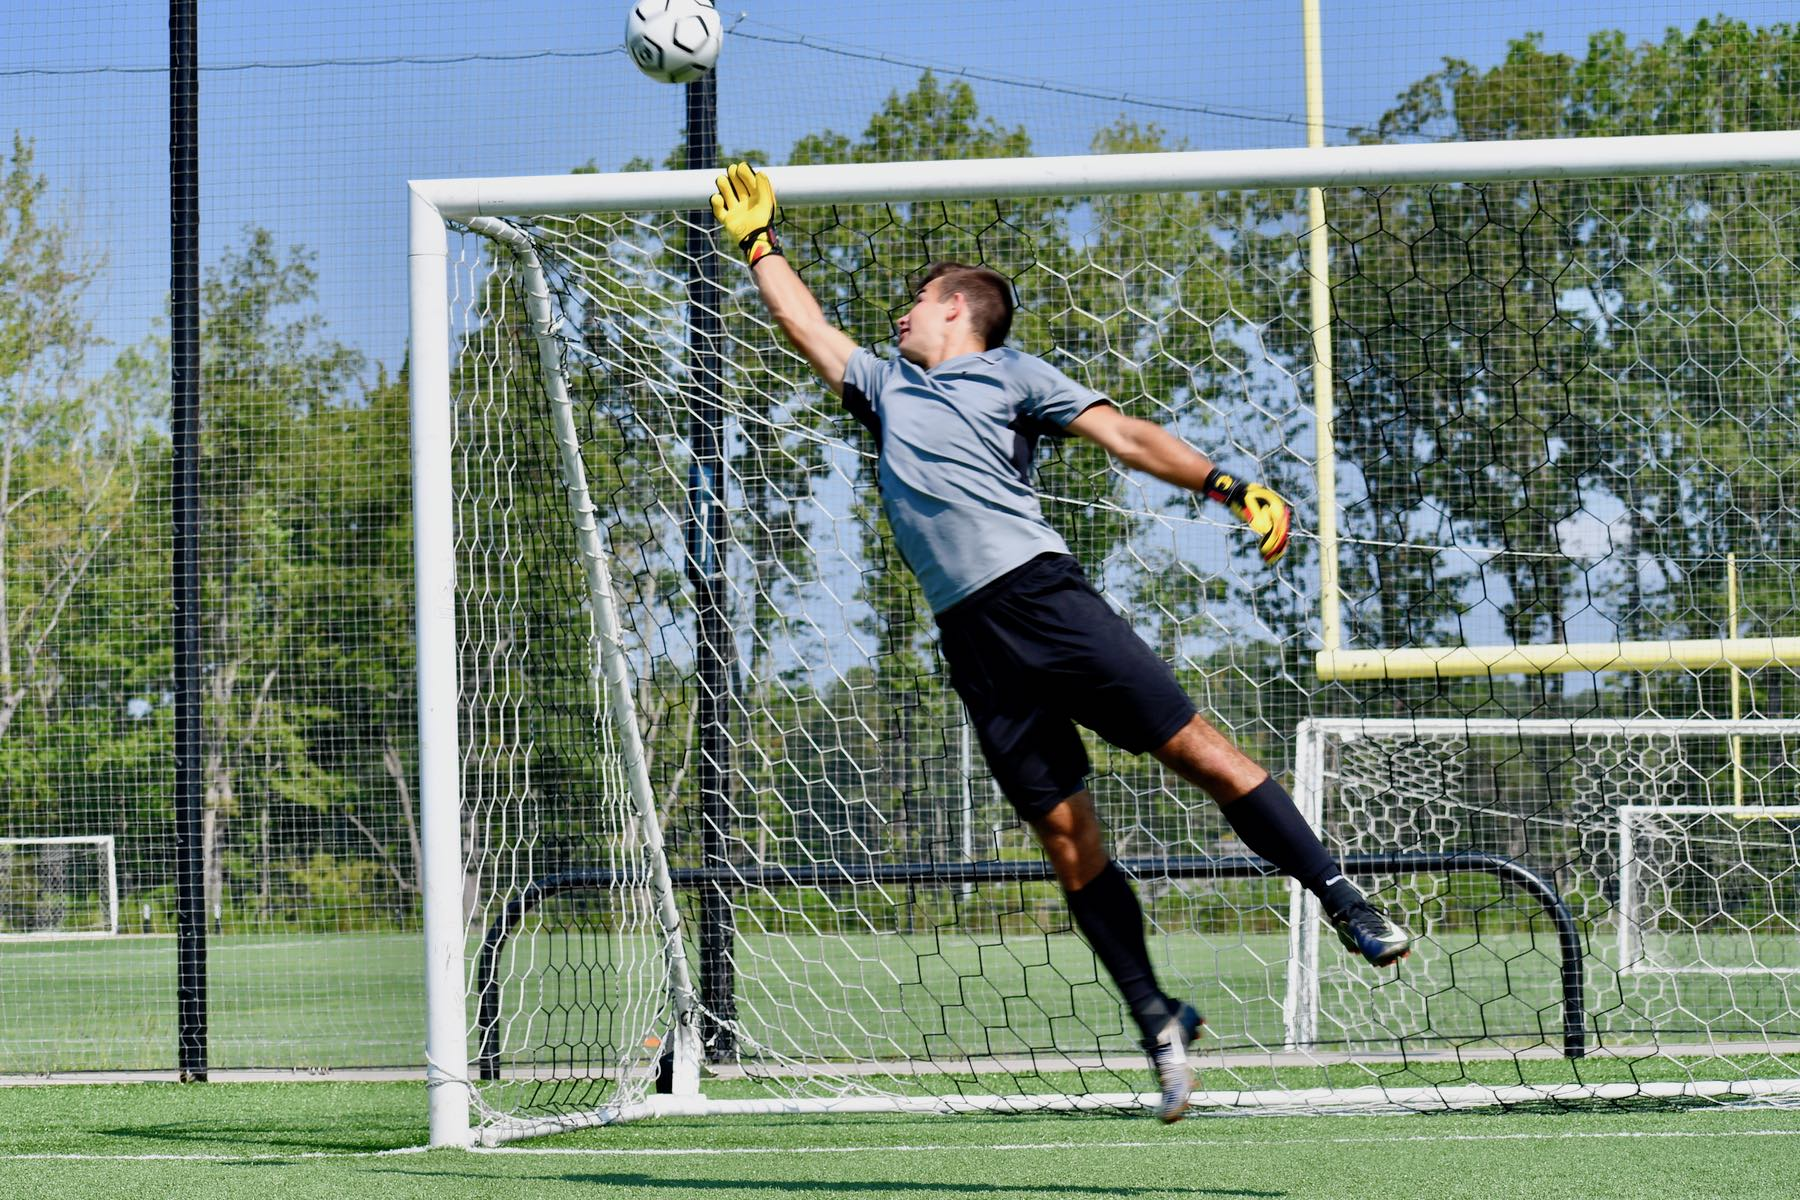 goalkeeper jumping to catch the ball